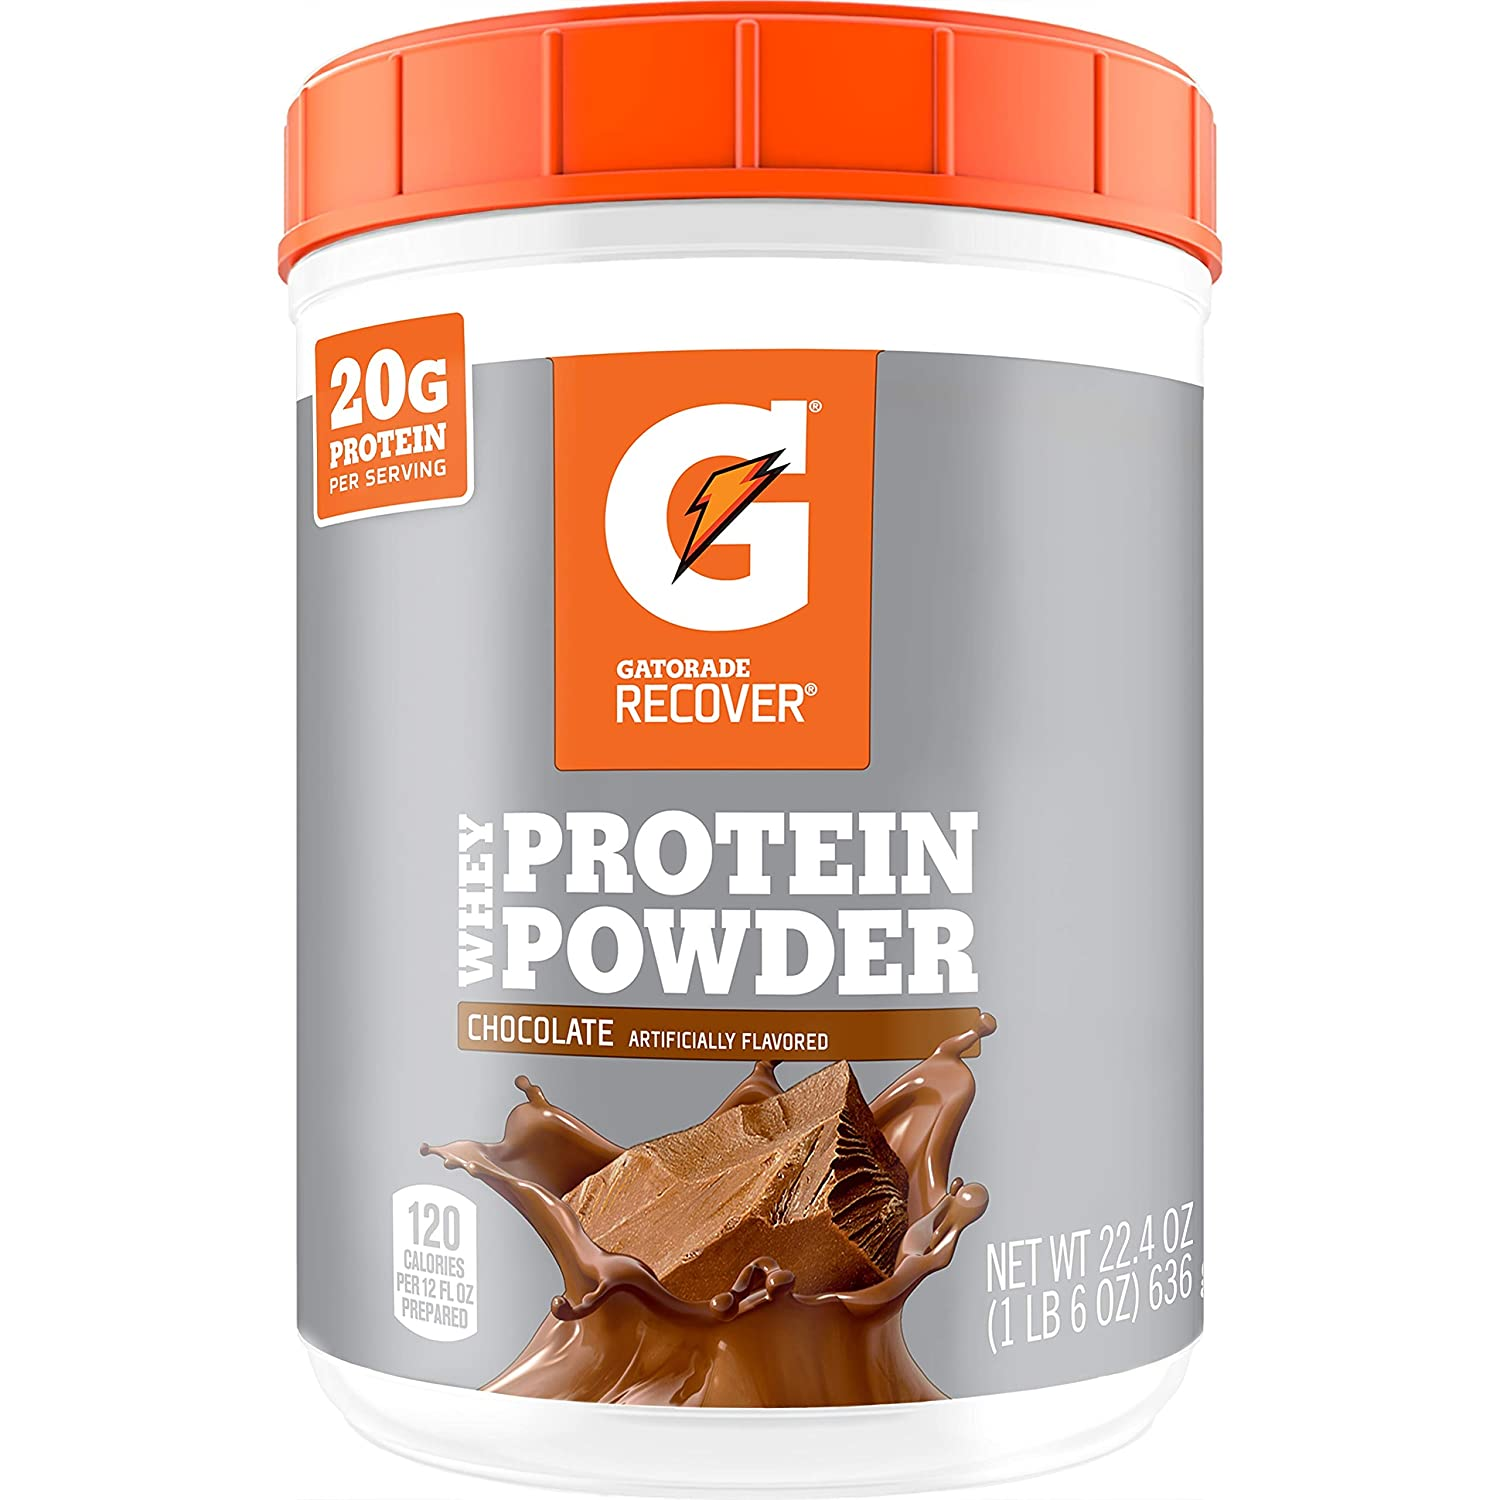 Gatorade Whey Protein Powder Chocolate Max 88% OFF servings Ounce famous 20 22.4